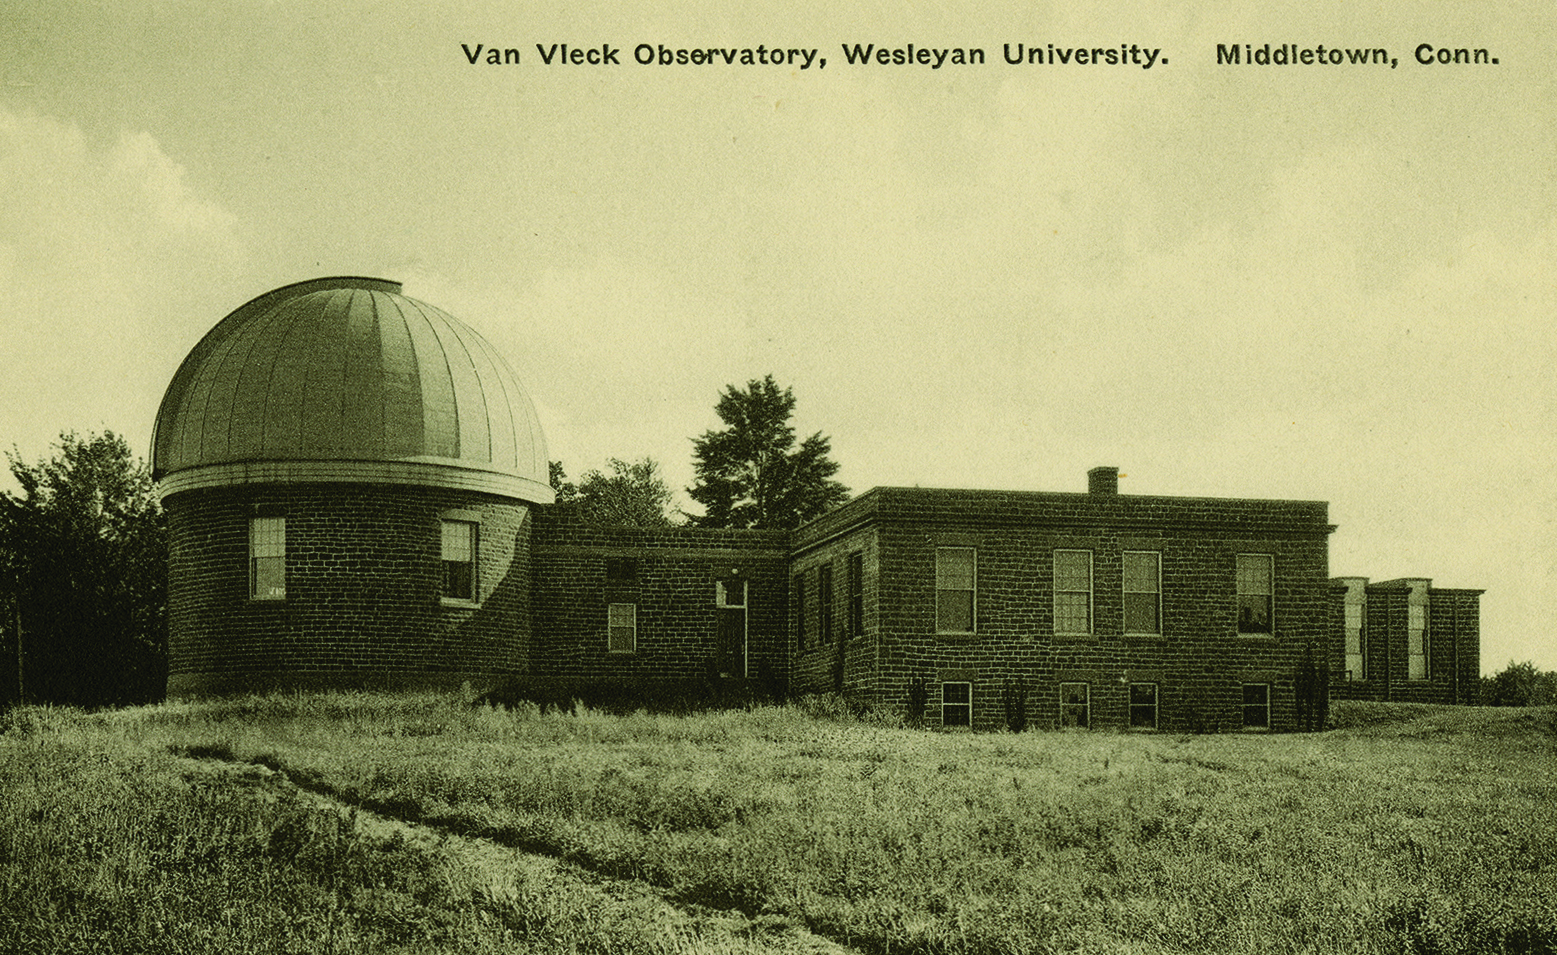 Henry Bacon's architecture at Wesleyan includes Olin Library (top), Eclectic (below), and Van Vleck Observatory (bottom).